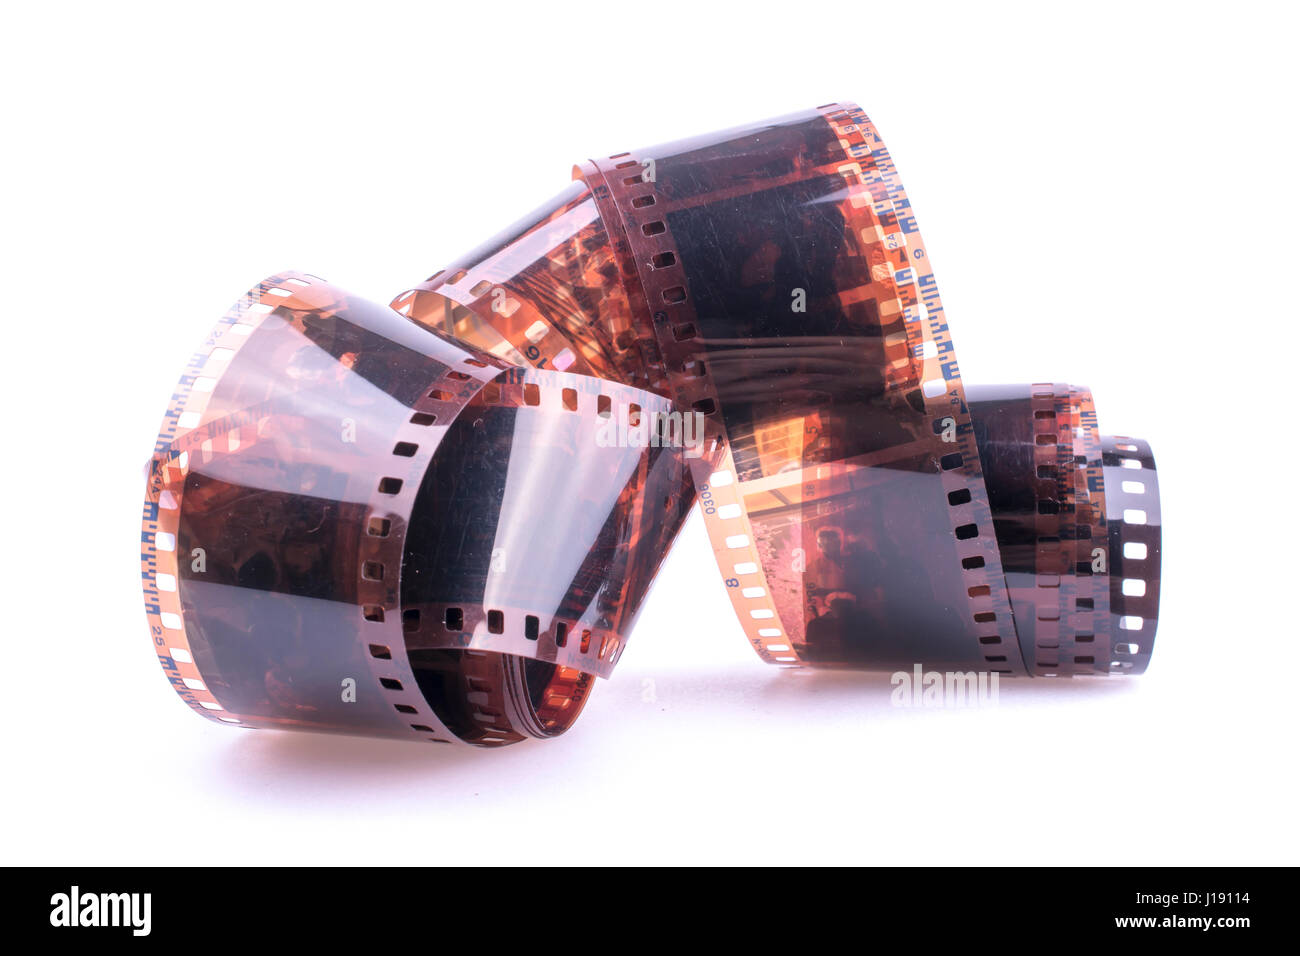 picture of curled color 35mm film against bright white background - Stock Image